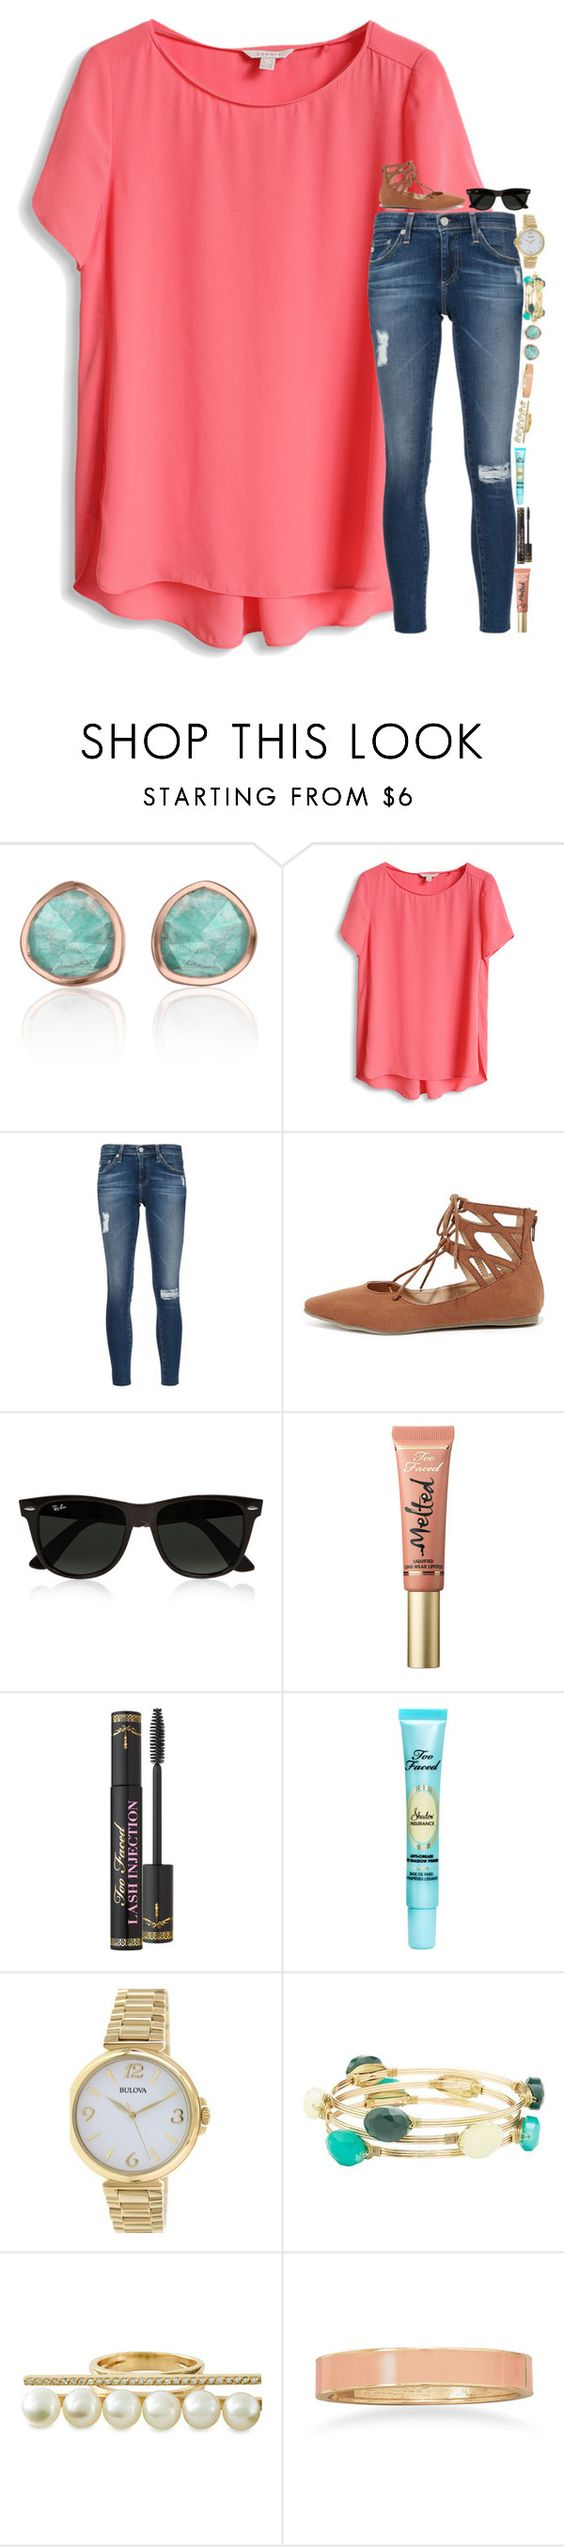 """Nachosssss "" by simply-lilyy ❤ liked on Polyvore featuring Monica Vinader, AG Adriano Goldschmied, Liliana, Ray-Ban, Too Faced Cosmetics, Bulova, Charlotte Russe, Gold Philosophy and BillyTheTree"